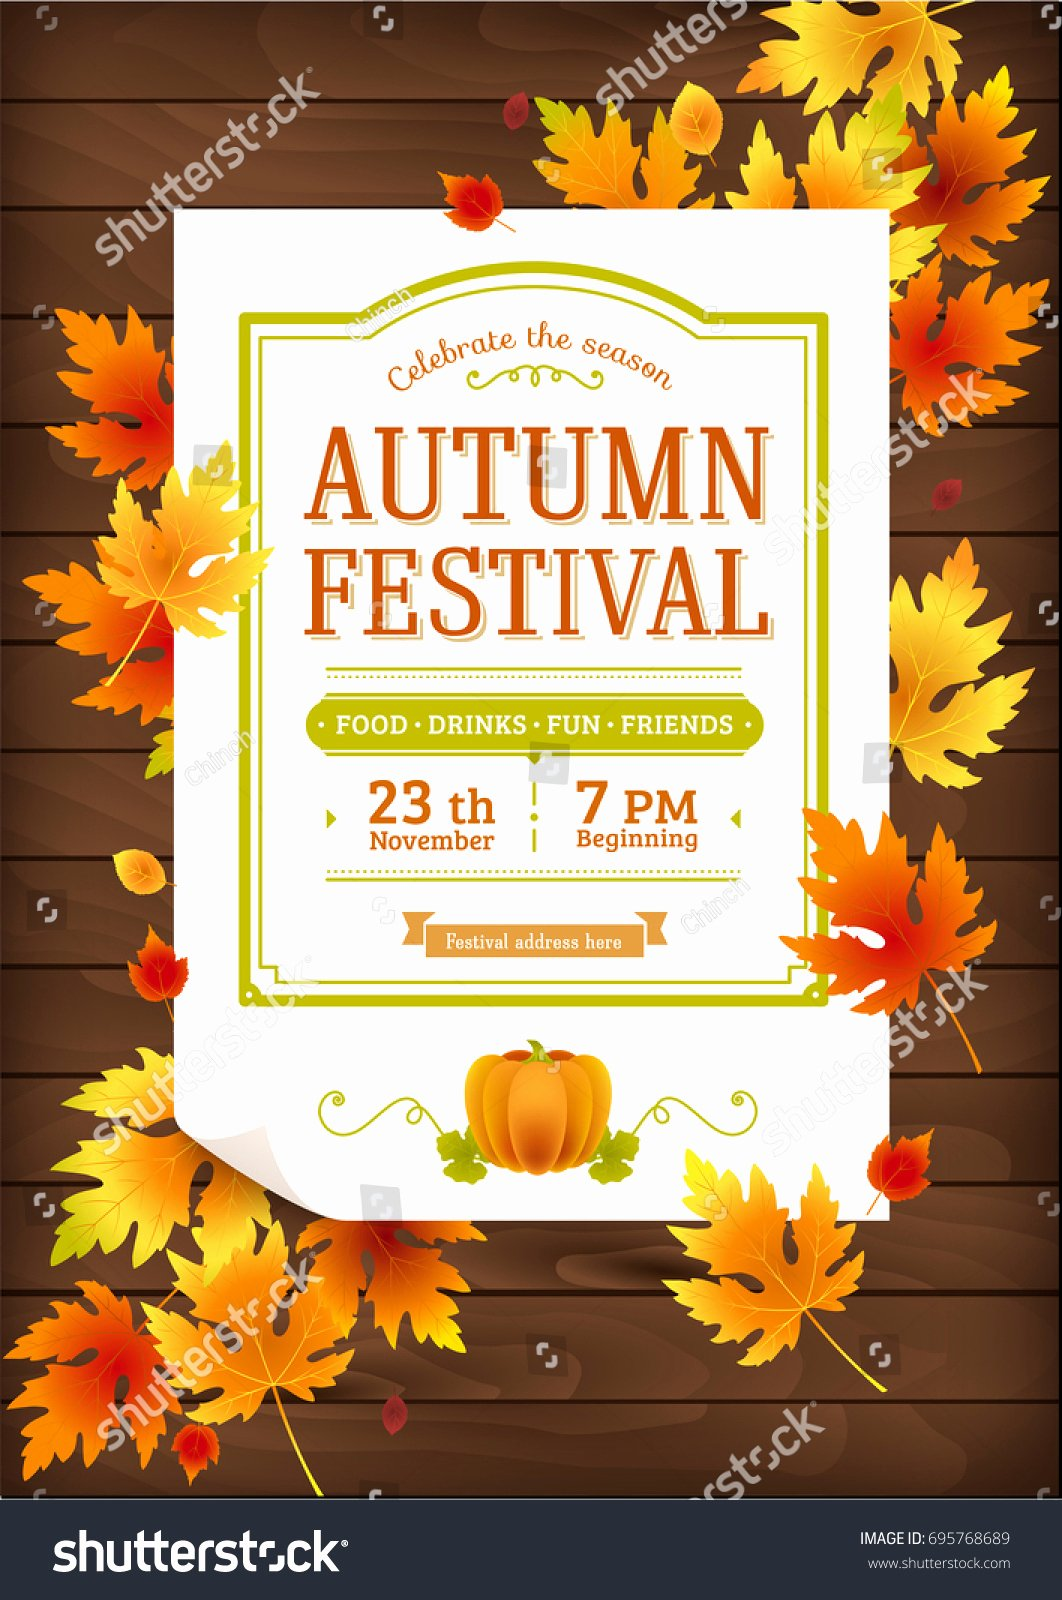 Fall Party Invitation Template New Autumn Festival Fall Party Invitation Autumn Stock Vector